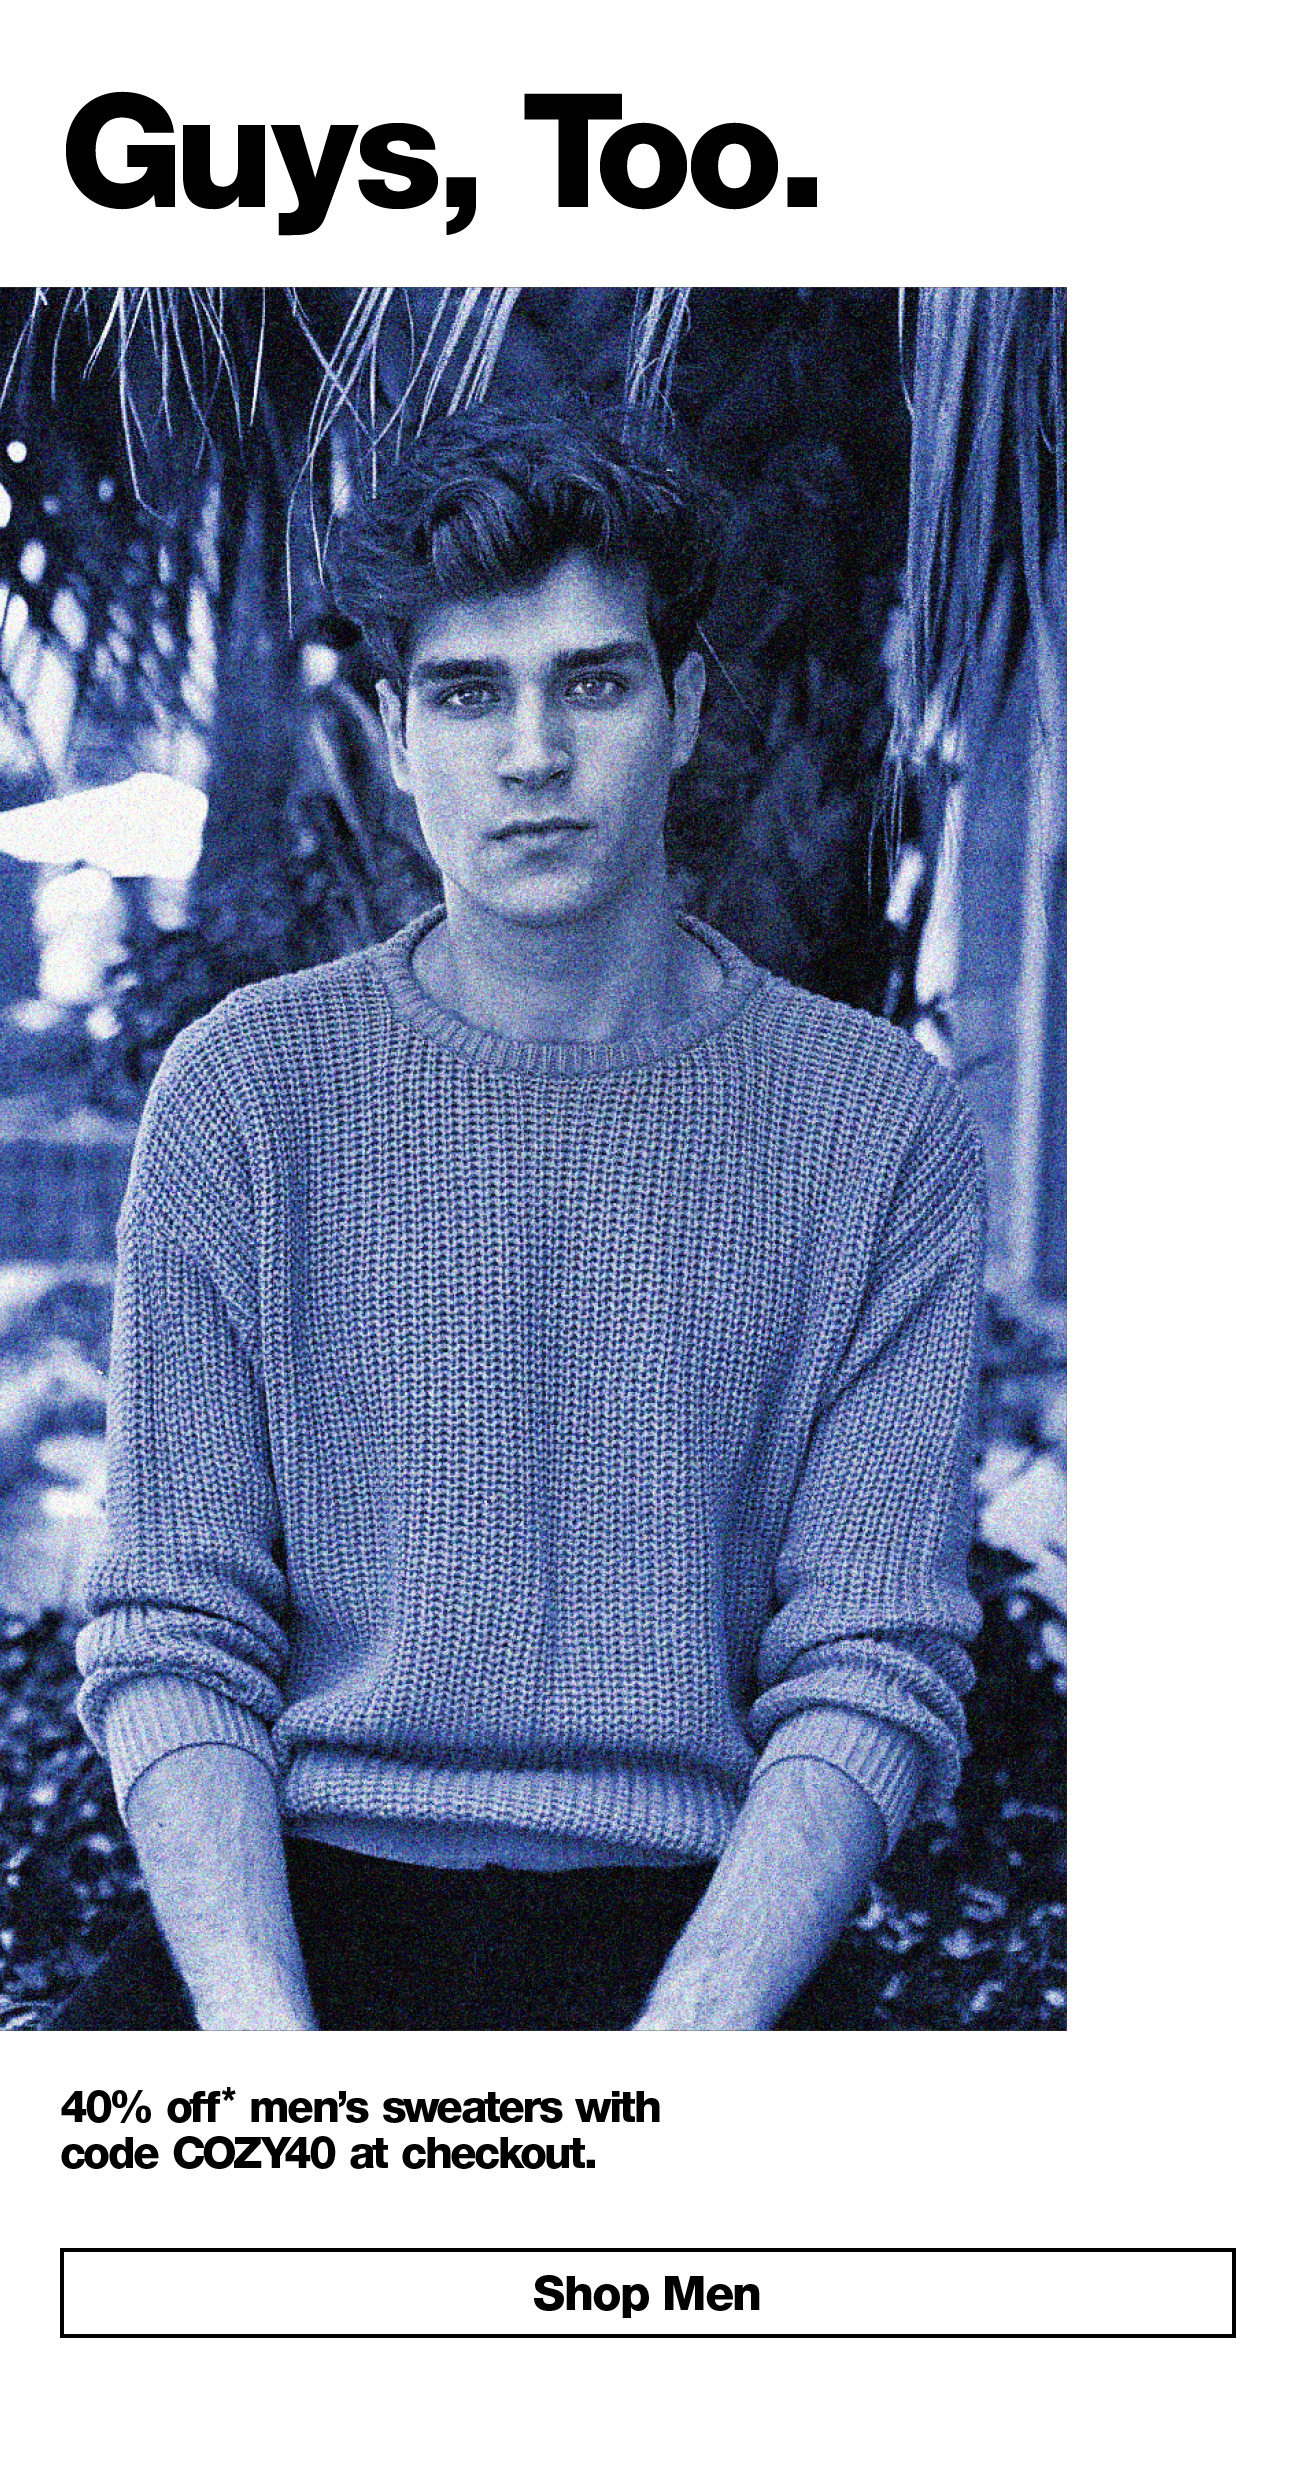 Guy Styles: 40% Off Sweaters